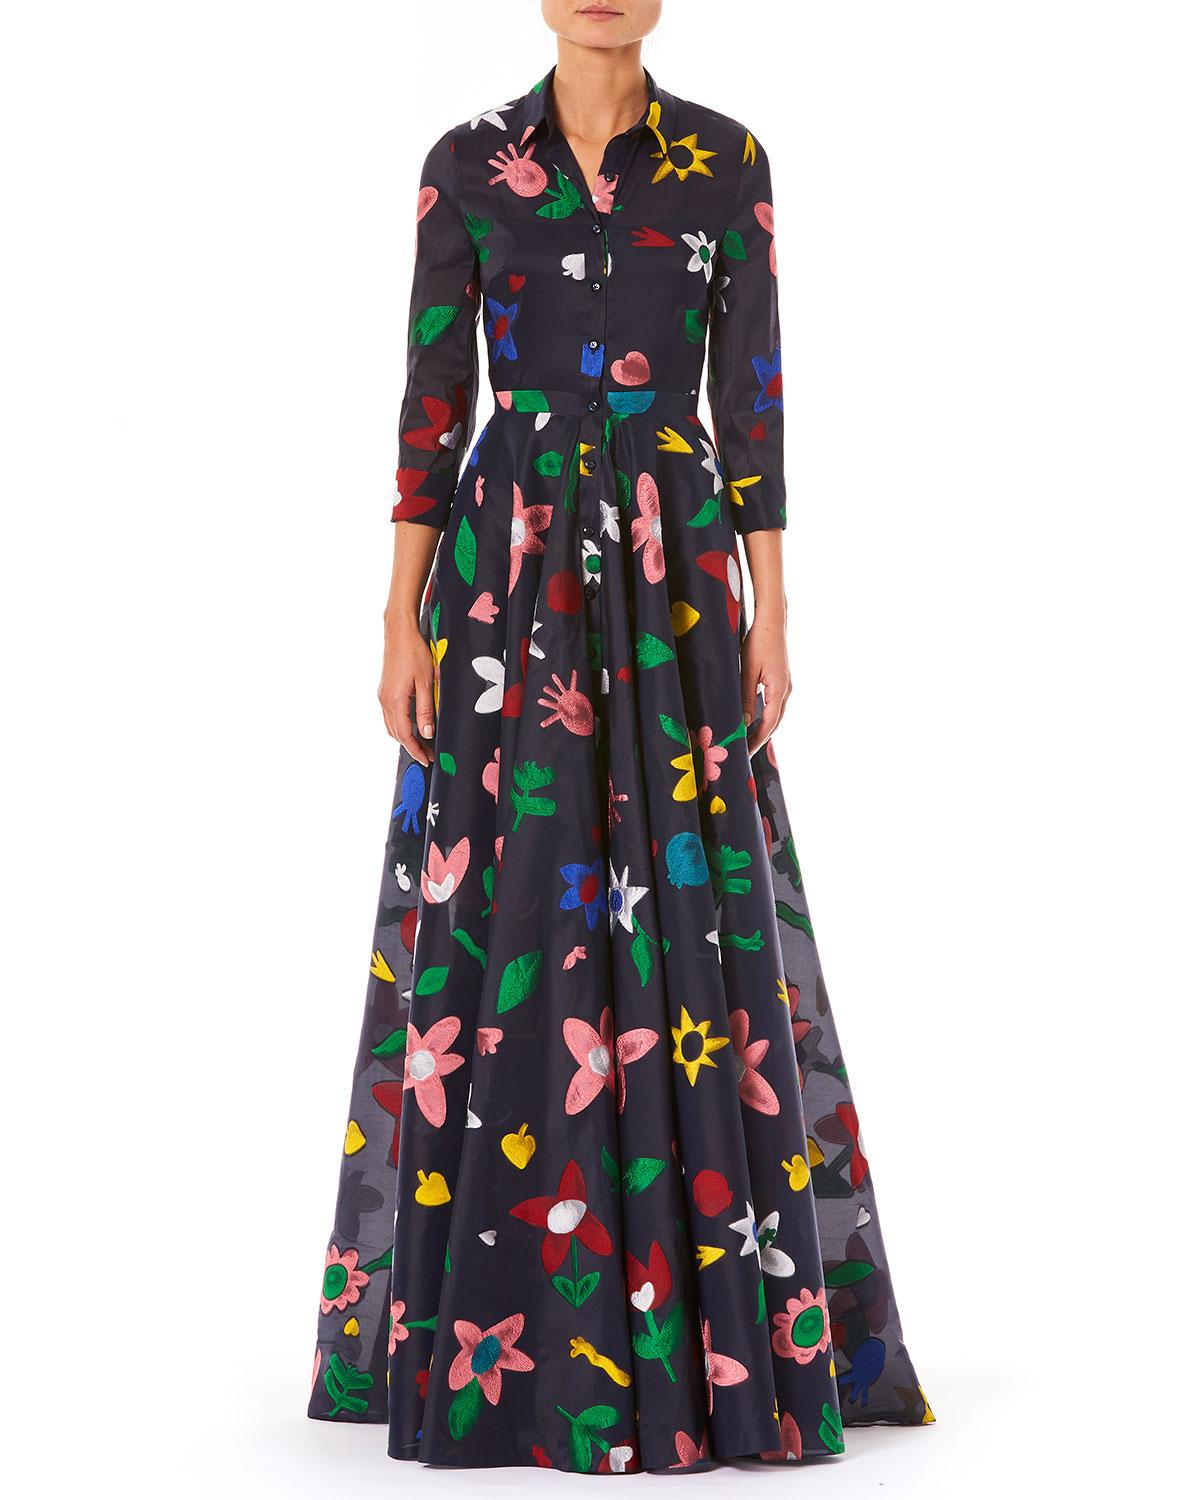 2b2400b6f6 Carolina Herrera 3/4-Sleeve Button-Front Floral-Embroidered Full Evening  Gown